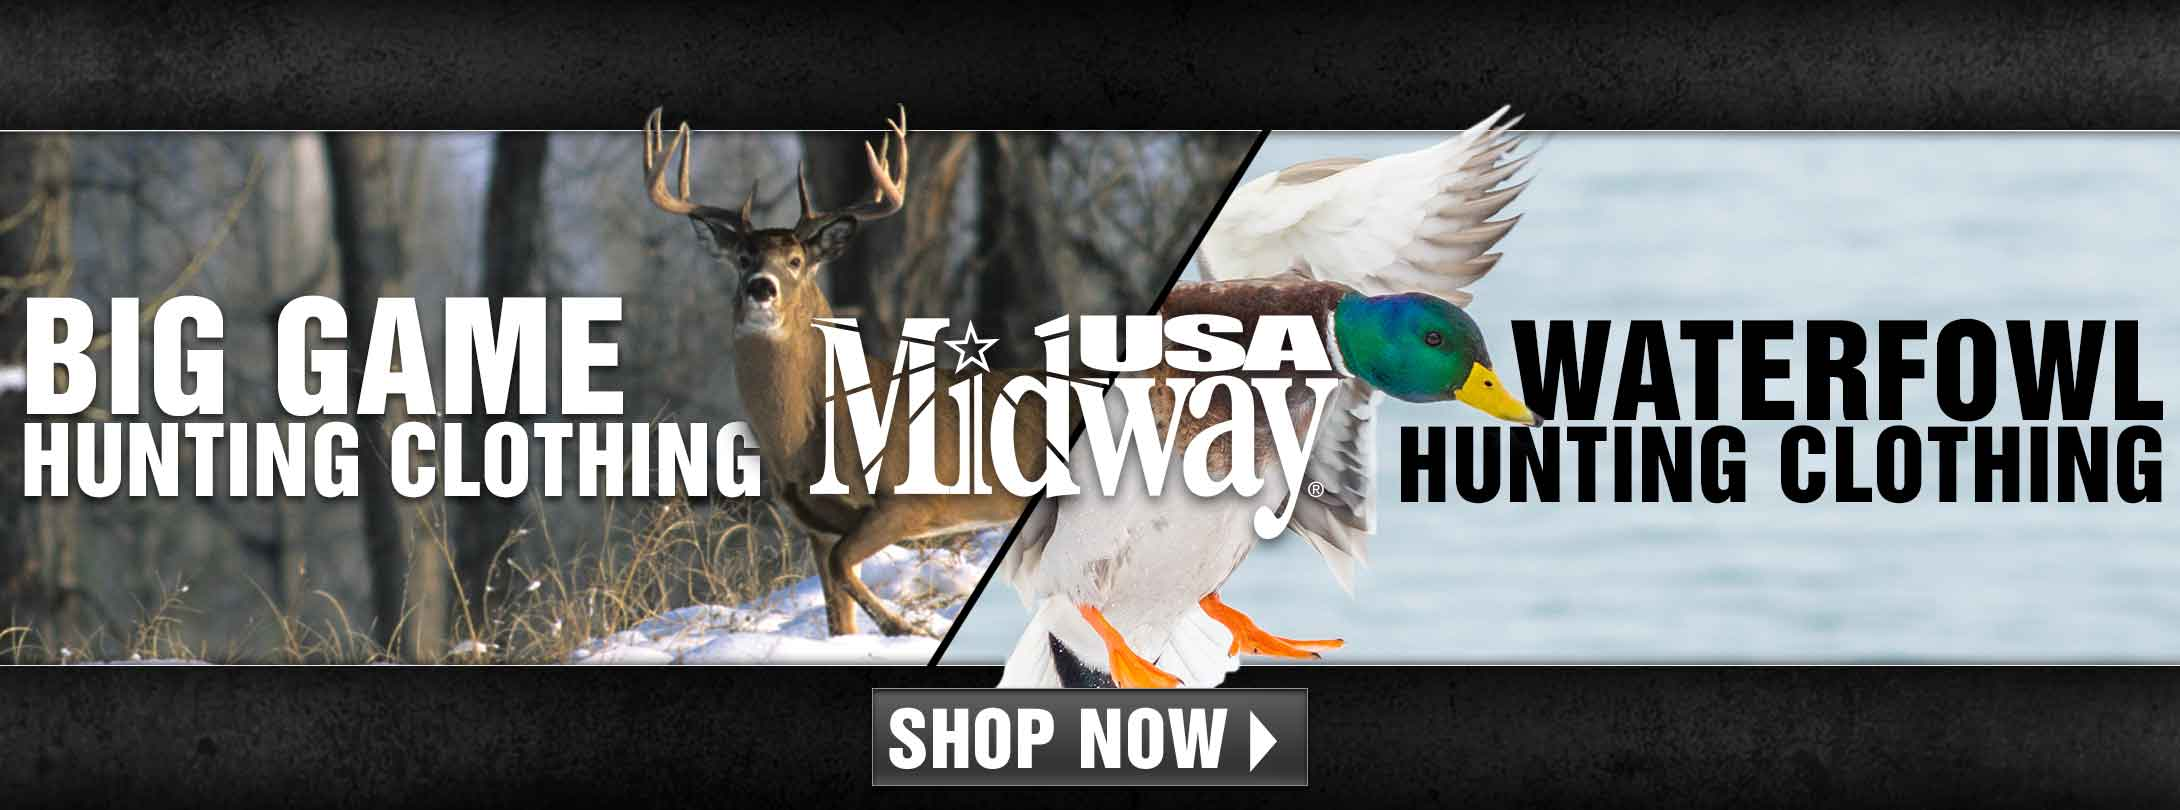 MidwayUSA Hunting Clothing Sale!